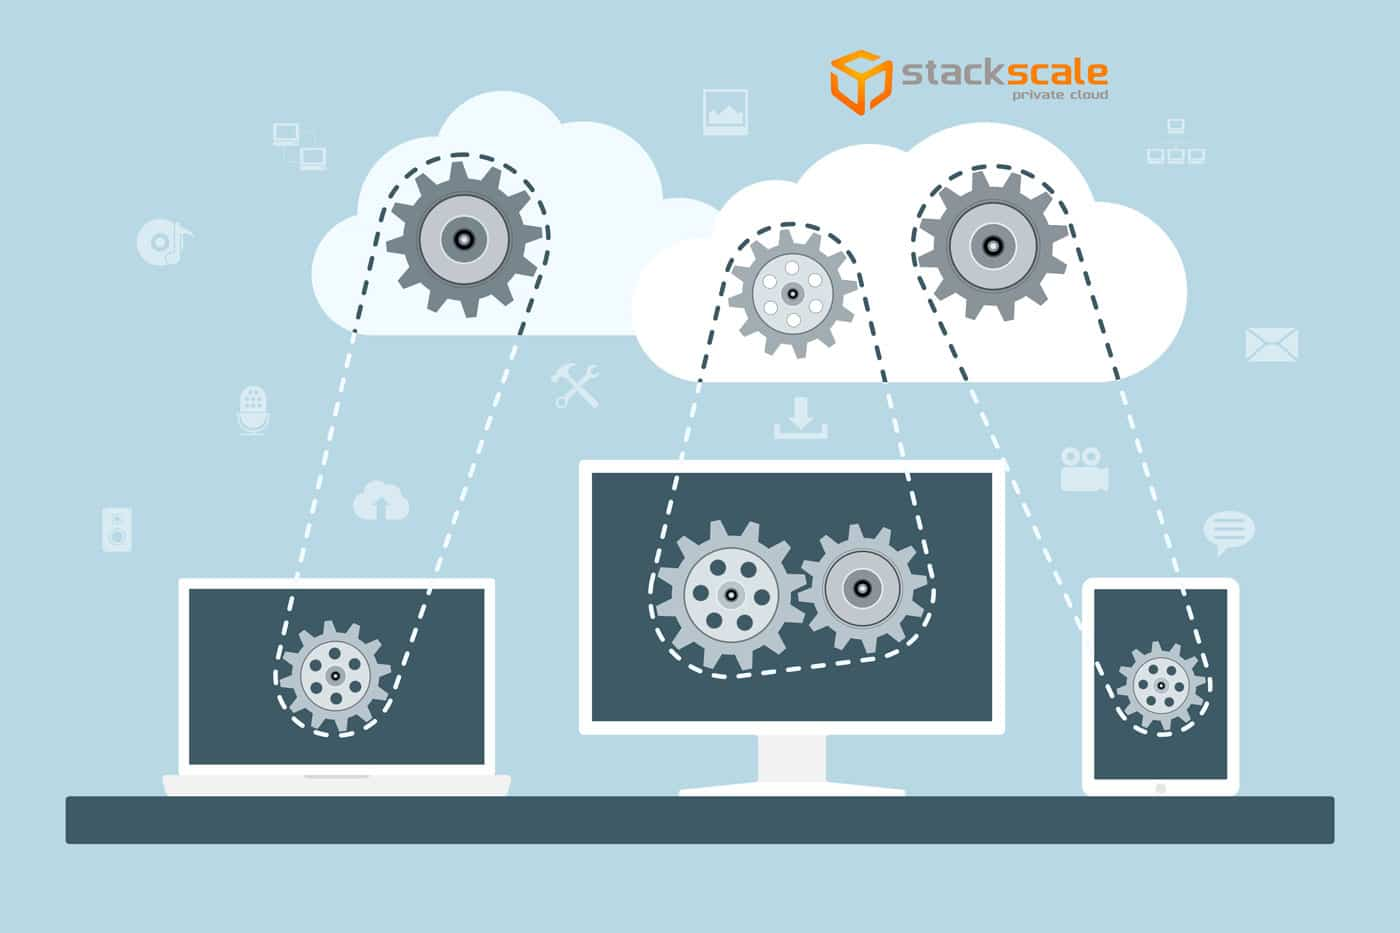 cloud-computing-stackscale